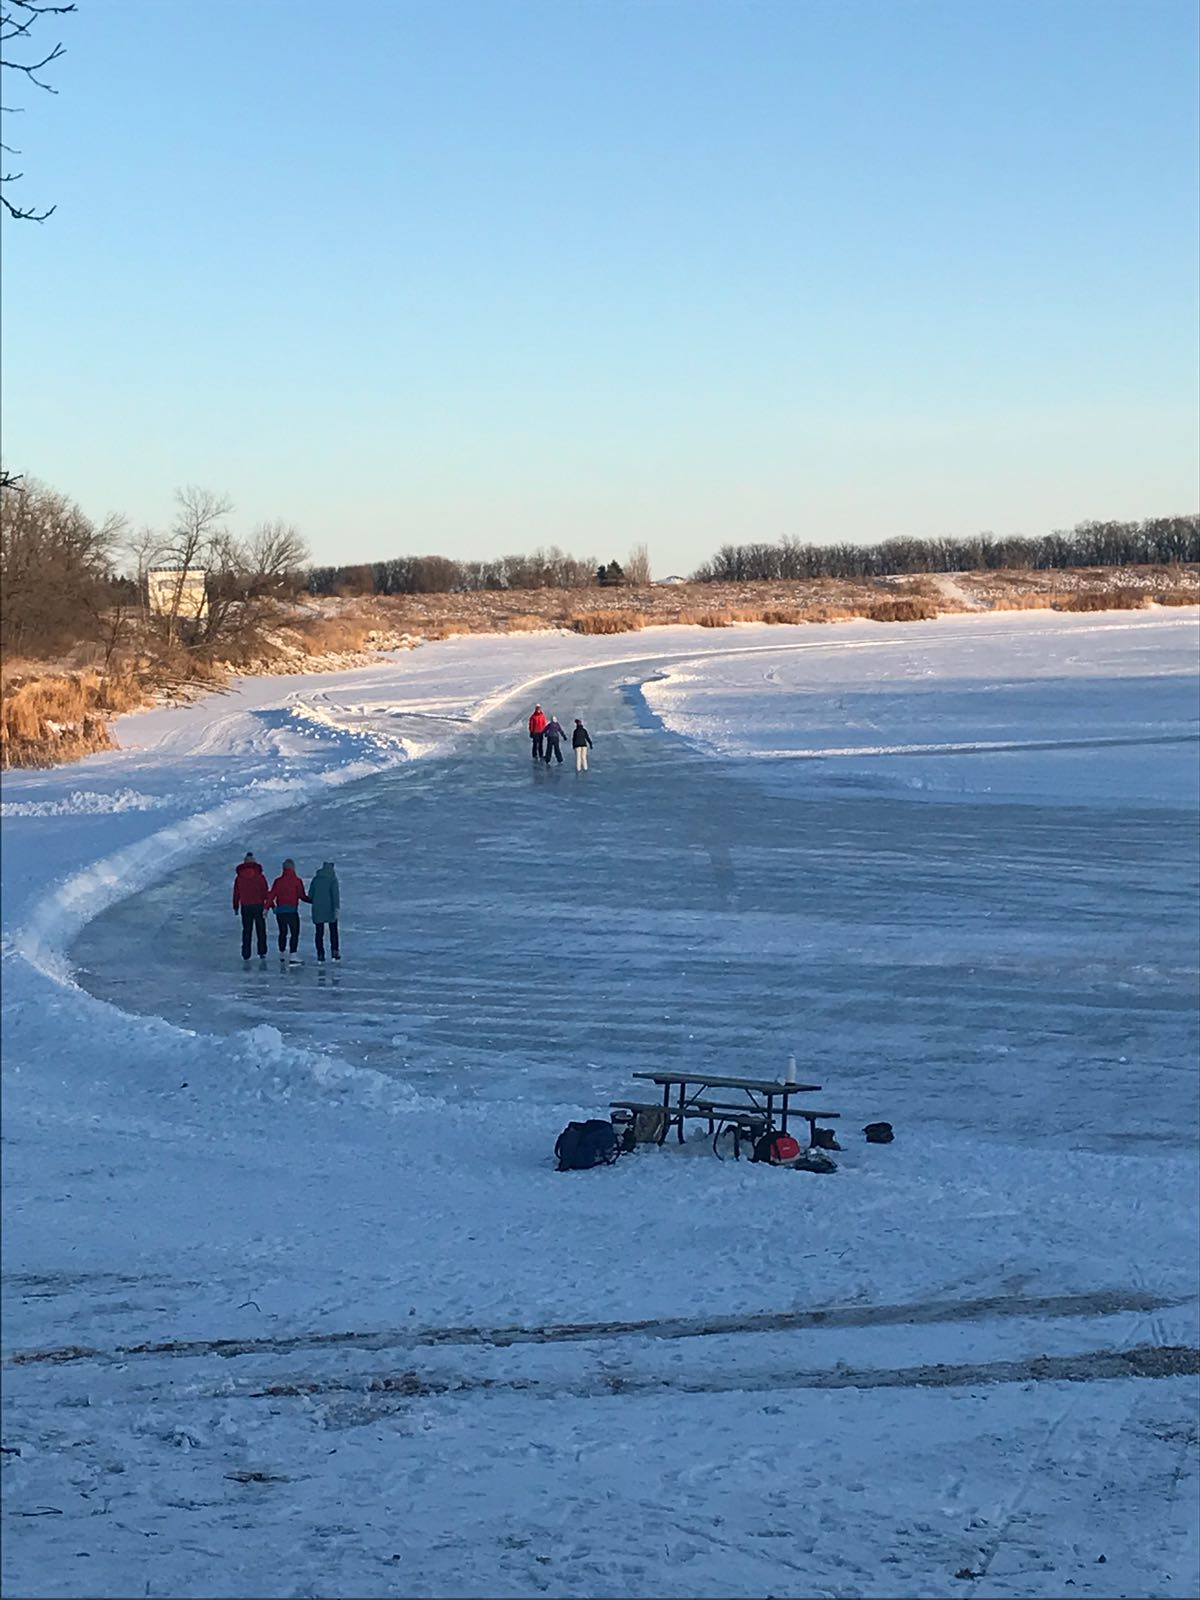 Ice rink during winter at Lake Minnewasta